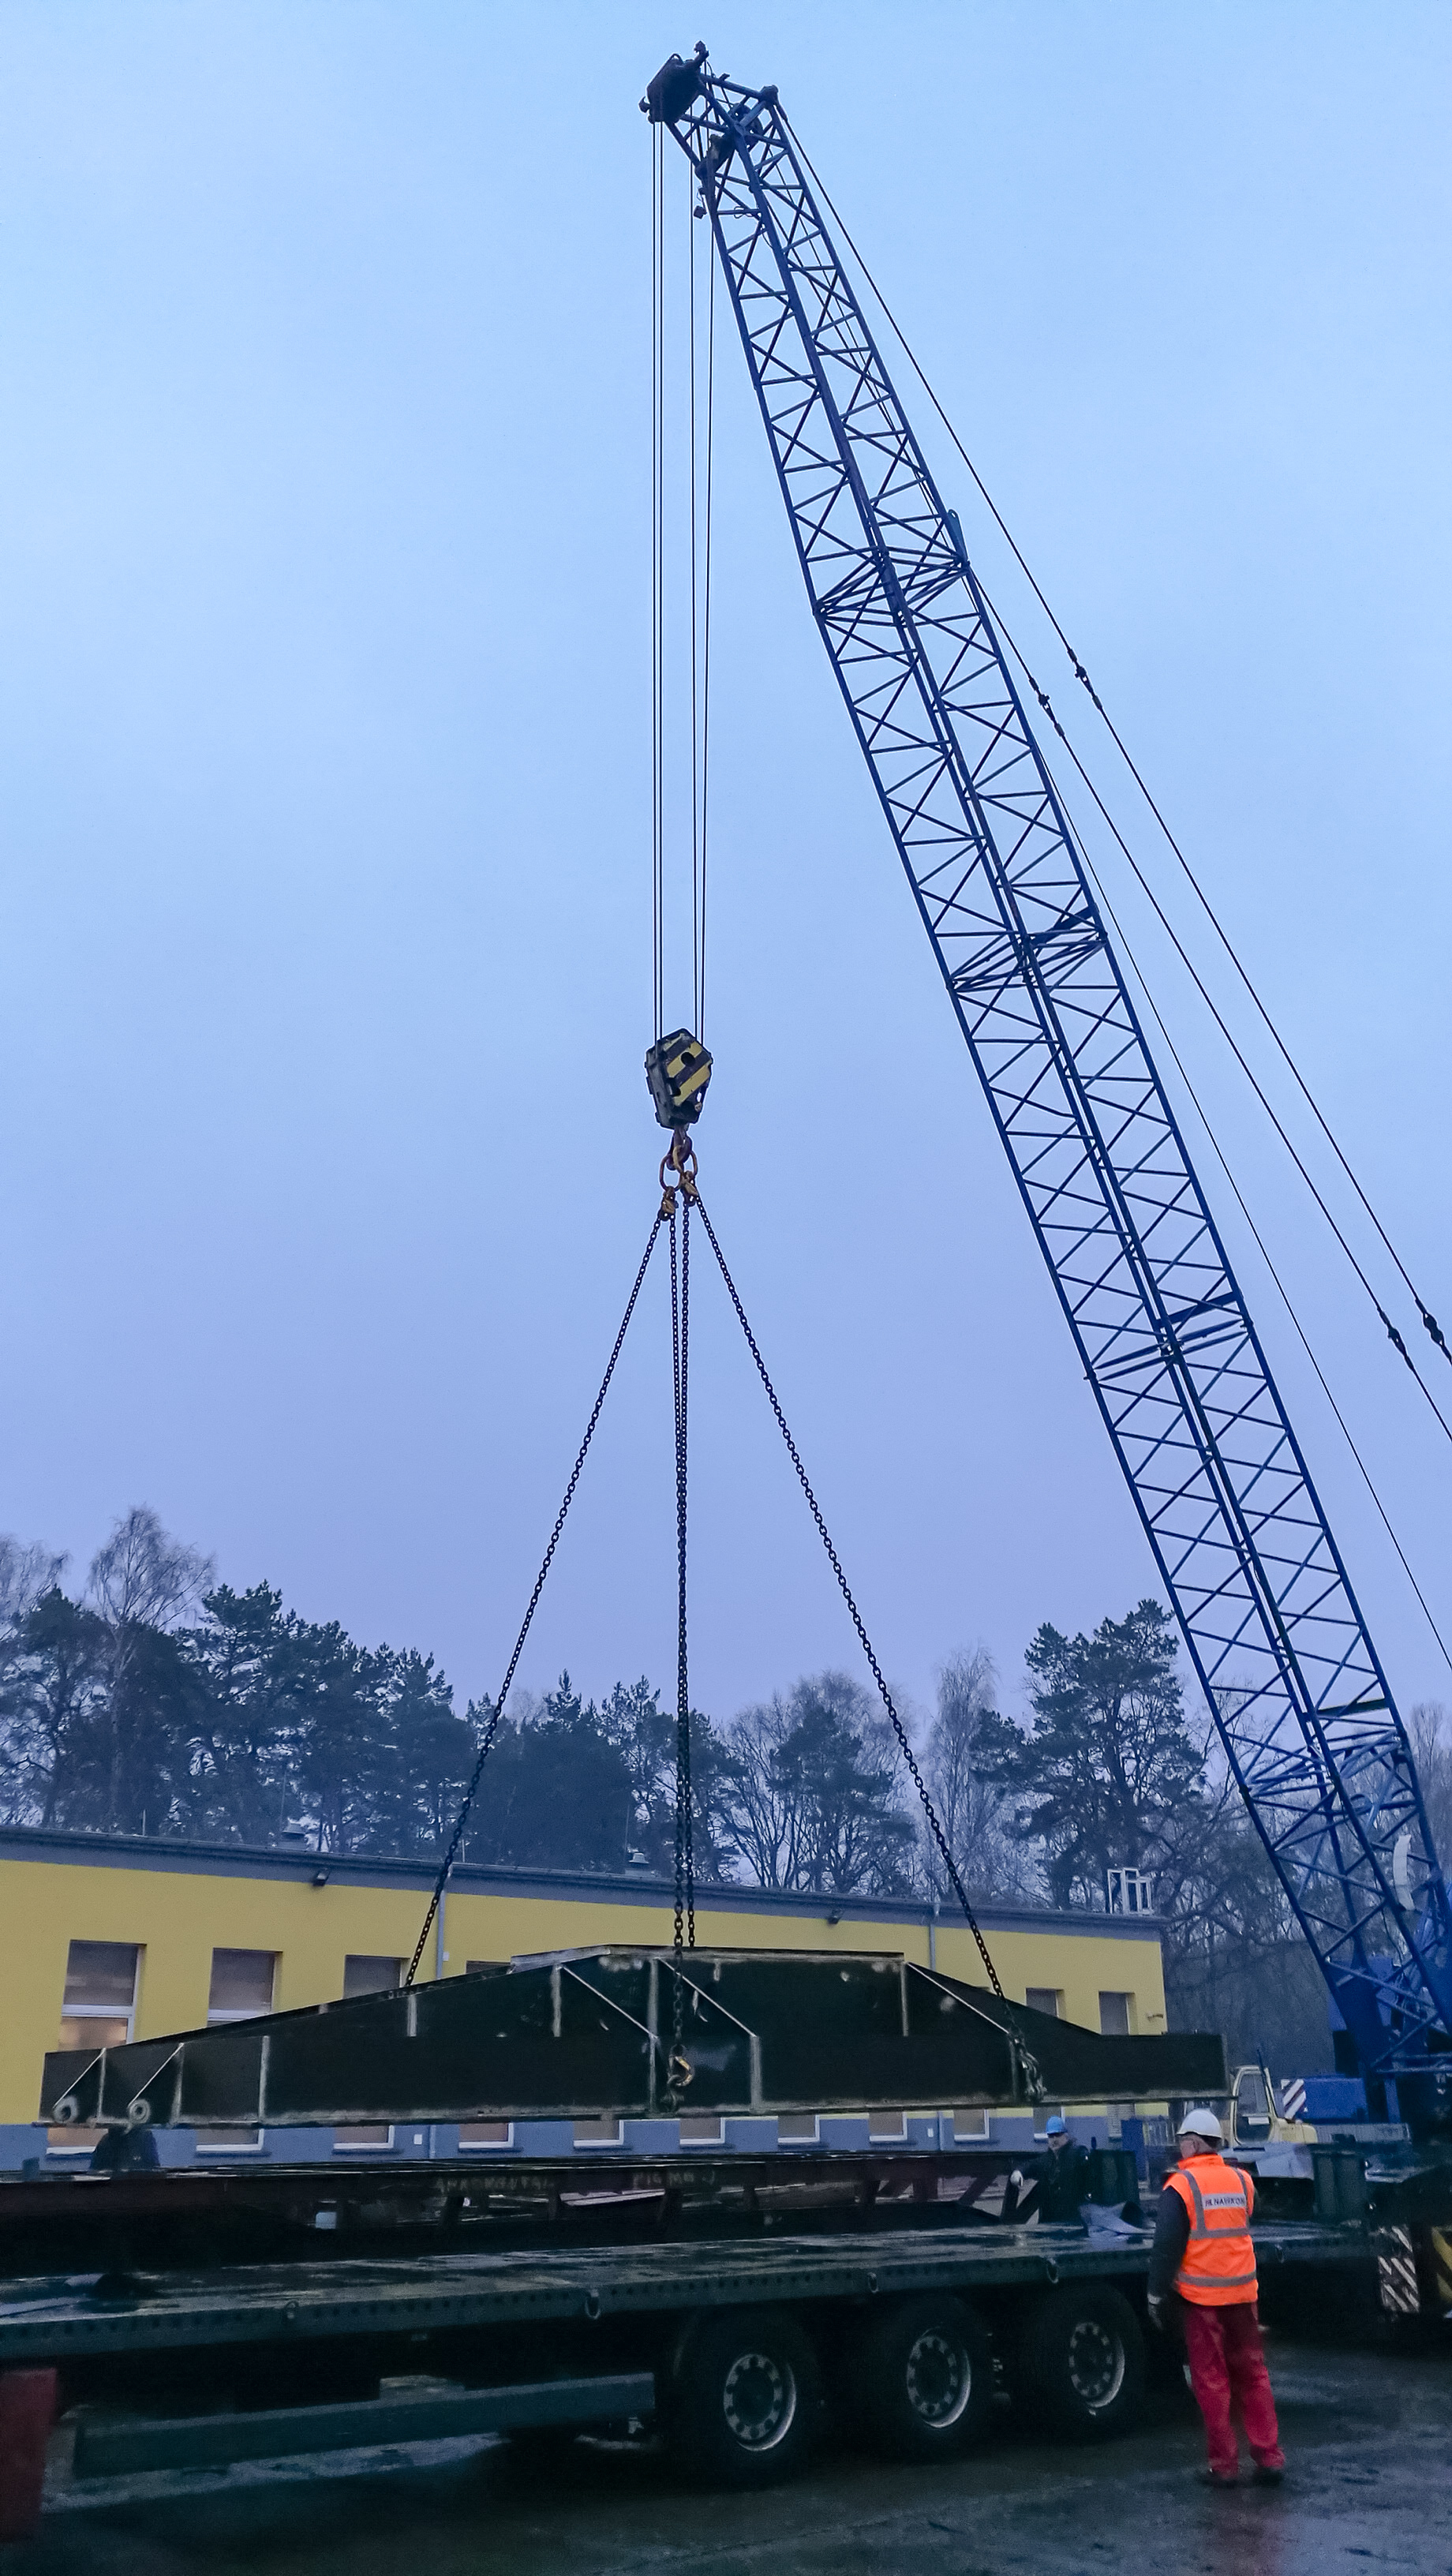 - NEMOS can look back at 2018 as an exciting and successful year. Good progress has been made on the design and construction of the 2019 Research Tower, due to be installed in Oostende in 2019. Today, the premanufactured foundation for the top structure was delivered to NAVIKON SRY LTD in Poland. In the following weeks, NAVIKON will manufacture the rest of the powerhouse on top of the foundation. The boat landing for the Ostend Research Tower is also being manufactured by NAVIKON, with the tower structure being manufactured in Germany by EEW. Once complete, the research structure will weigh approximately 80 tons.Meanwhile, the NEMOS team is working to finalise the design of the 2019 Wave Energy Converter Prototype. The first components have already been ordered, and the team is looking forward to sea-testing the new prototype in the New Year. The new machine has an 8 by 2 meter floater, connected via belts to a generator mounted on a submerged, high hydrodynamic resistance structure. This design minimises mooring loads and significantly reduces the cost of installation.The NEMOS team would like to take this opportunity to thank all its supporters and suppliers for their assistance and advice over the past year. Happy Holidays!